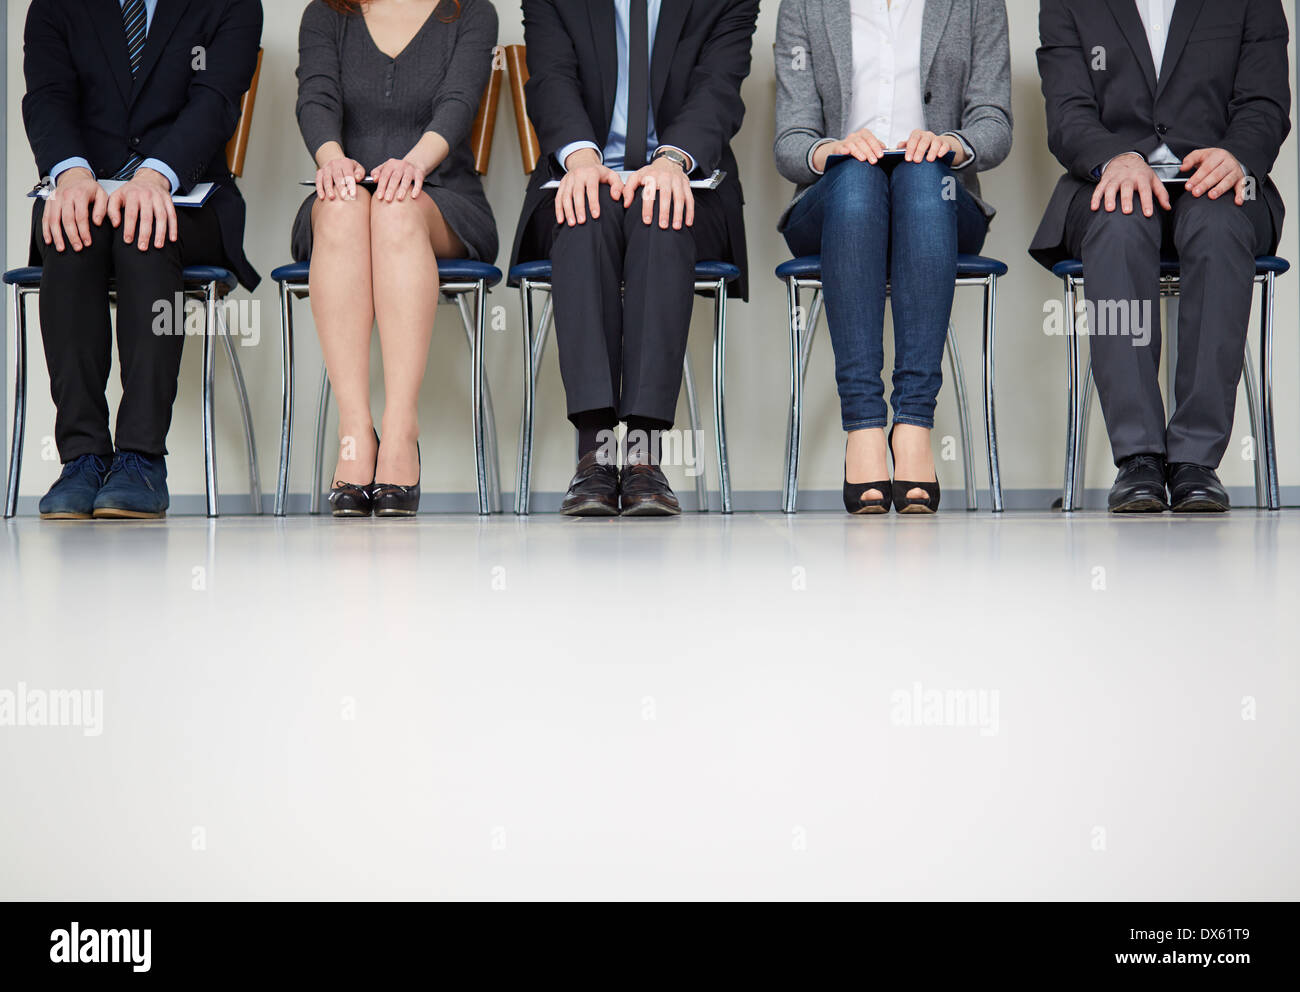 Cropped image of people in waiting - Stock Image